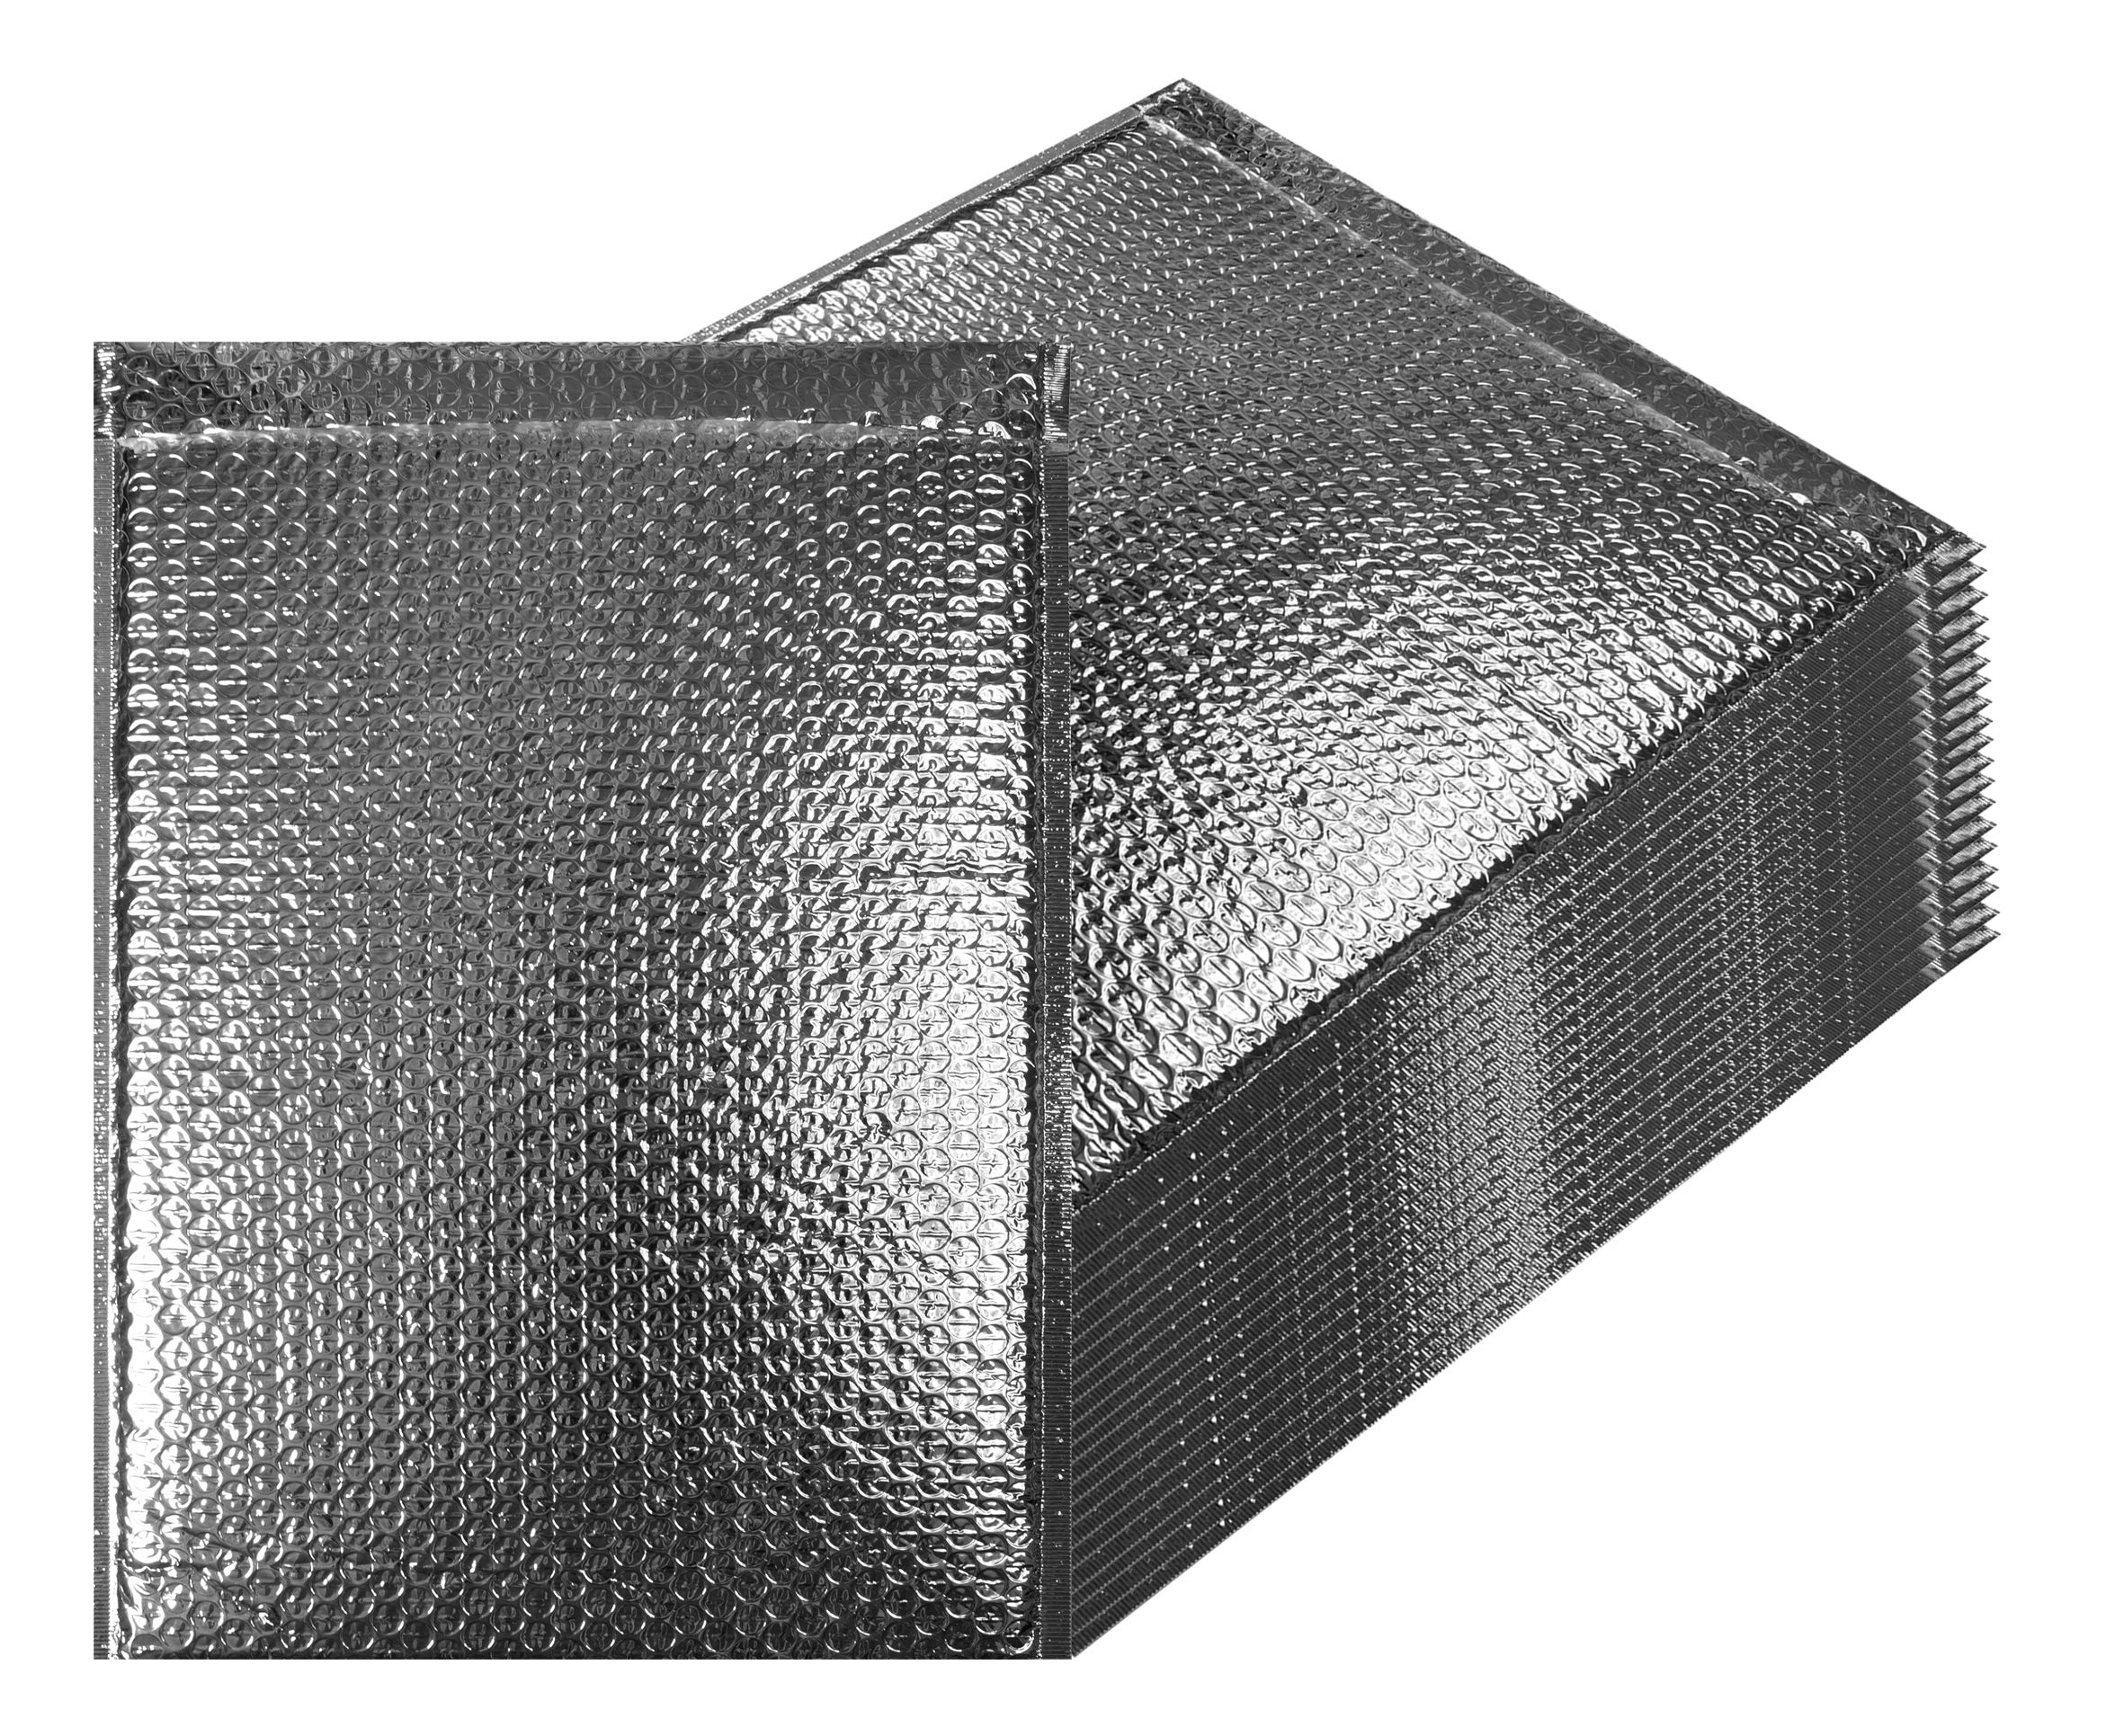 Thermal Insulated Bubble Mailers 12x17 Food Grade Padded envelopes 12 x 17 by Amiff. Pack of 10 Silver Cushion envelopes. Peel and Seal. Metallic foil. Mailing, Shipping, Packing, Packaging.